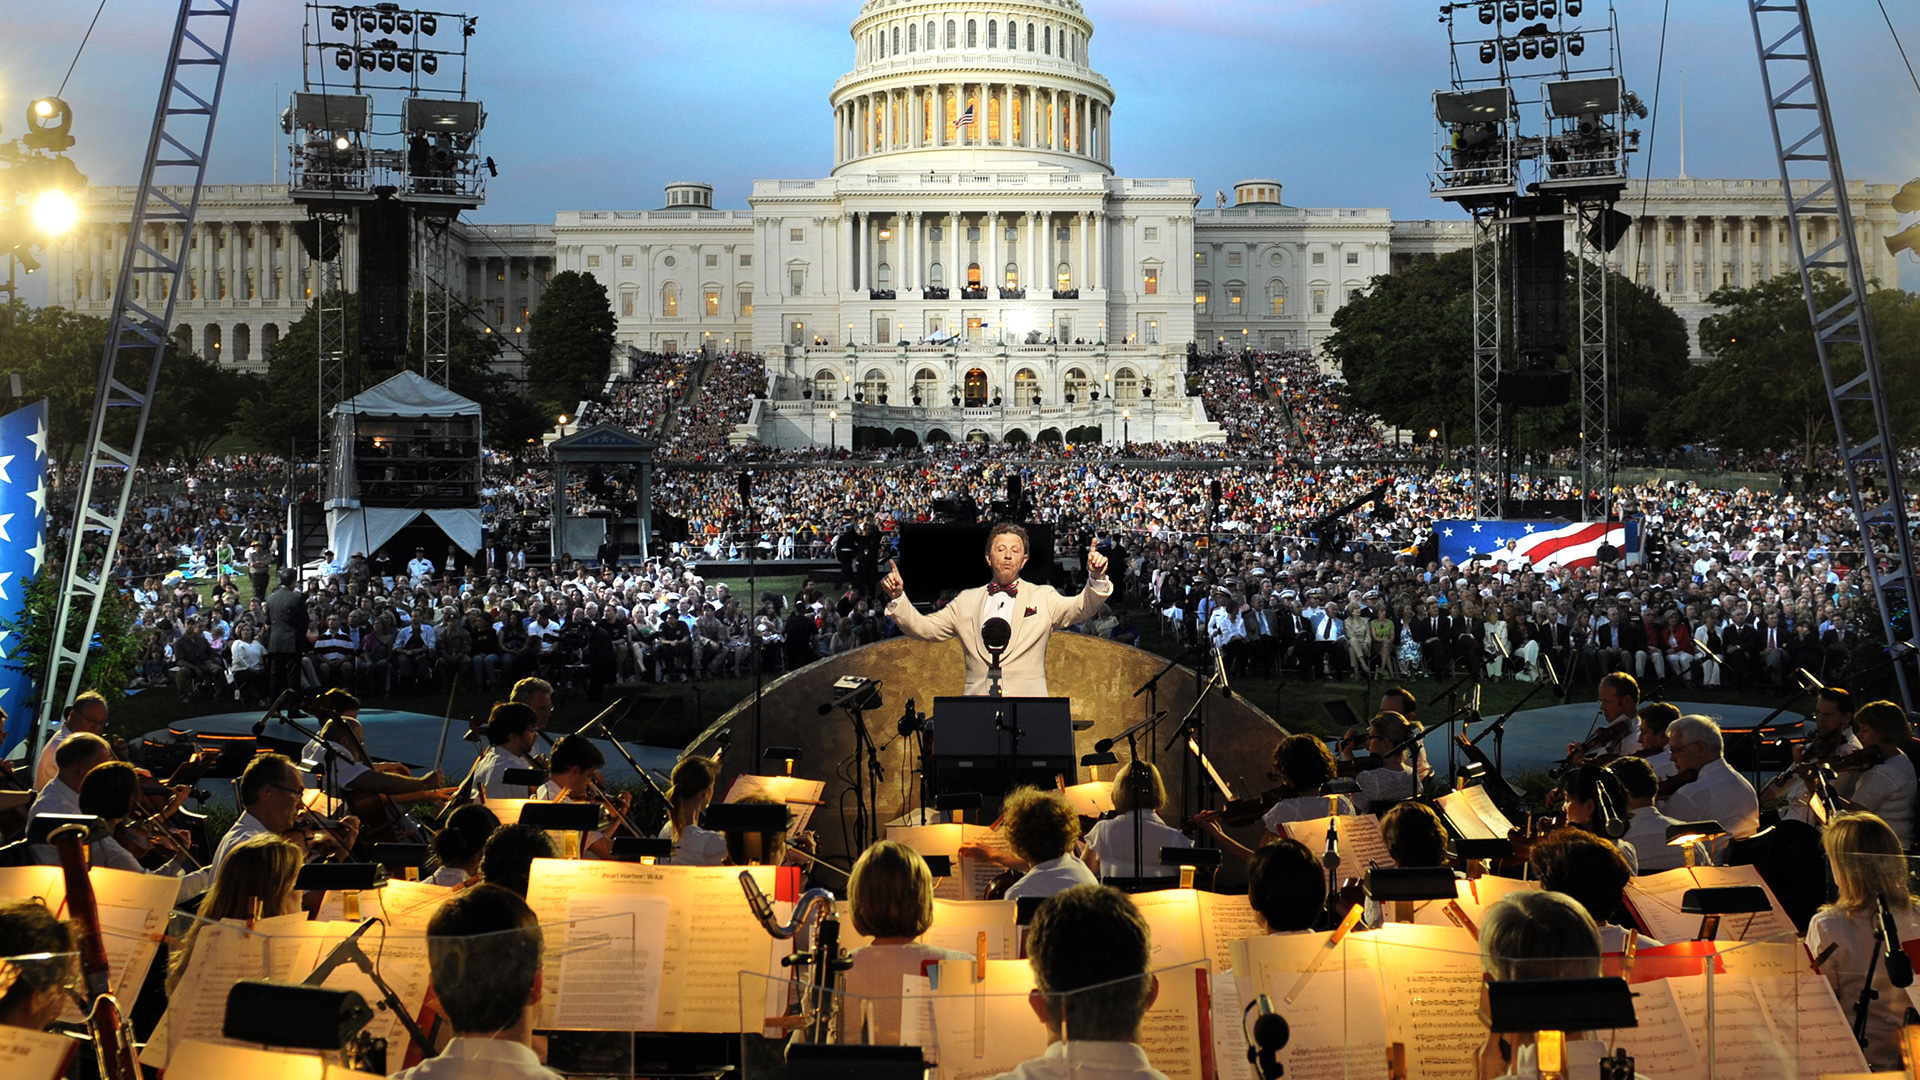 Maestro Jack Everly will lead the National Symphony during the 28th annual broadcast of the NATIONAL MEMORIAL DAY CONCERT, live from the West Lawn of the U.S. Capitol.